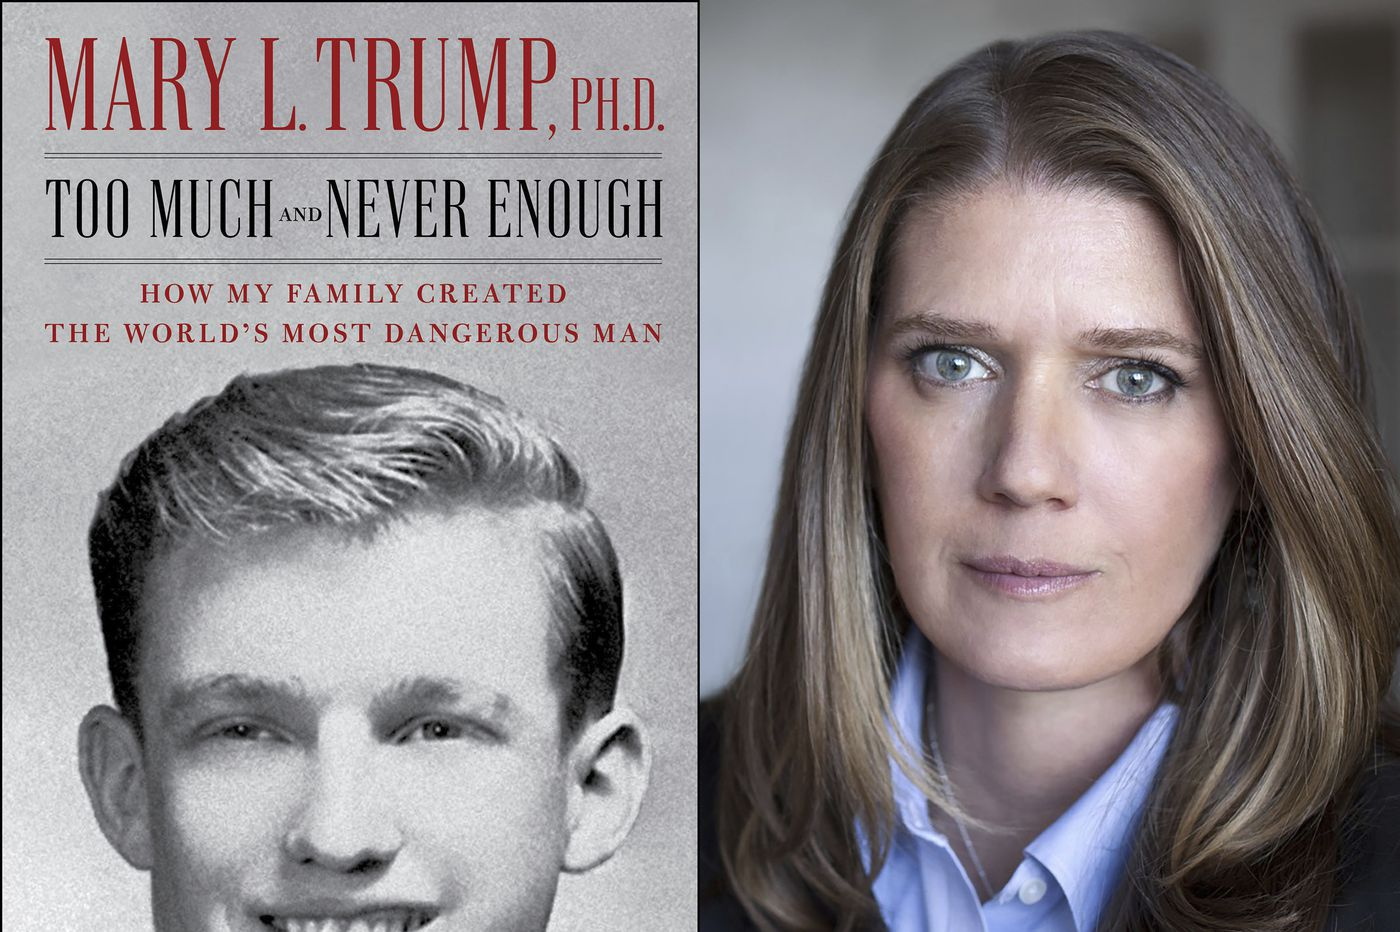 Mary Trump's book offers a devastating portrayal of the president